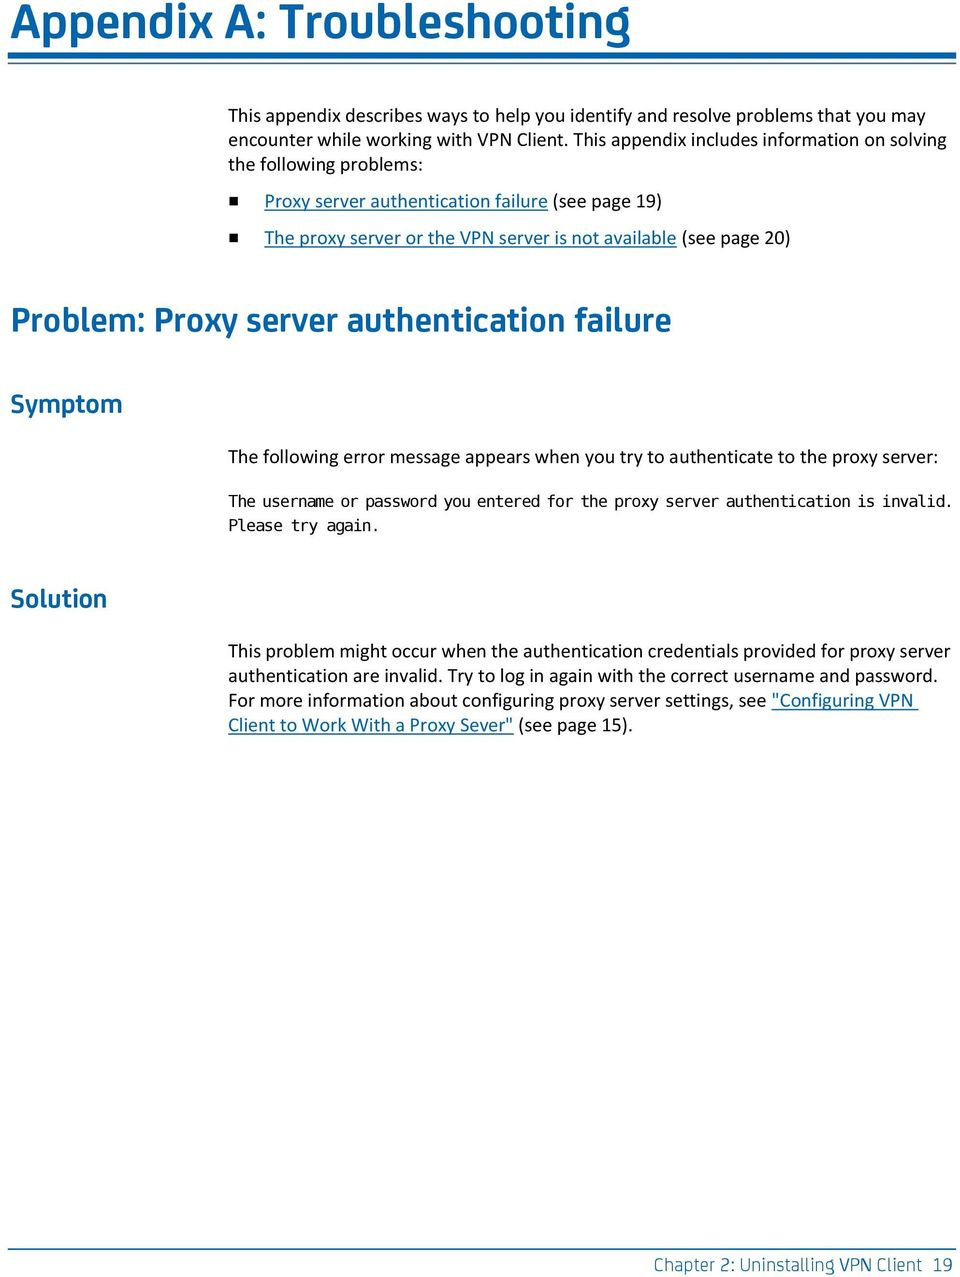 Proxy server authentication failure Symptom The following error message appears when you try to authenticate to the proxy server: The username or password you entered for the proxy server